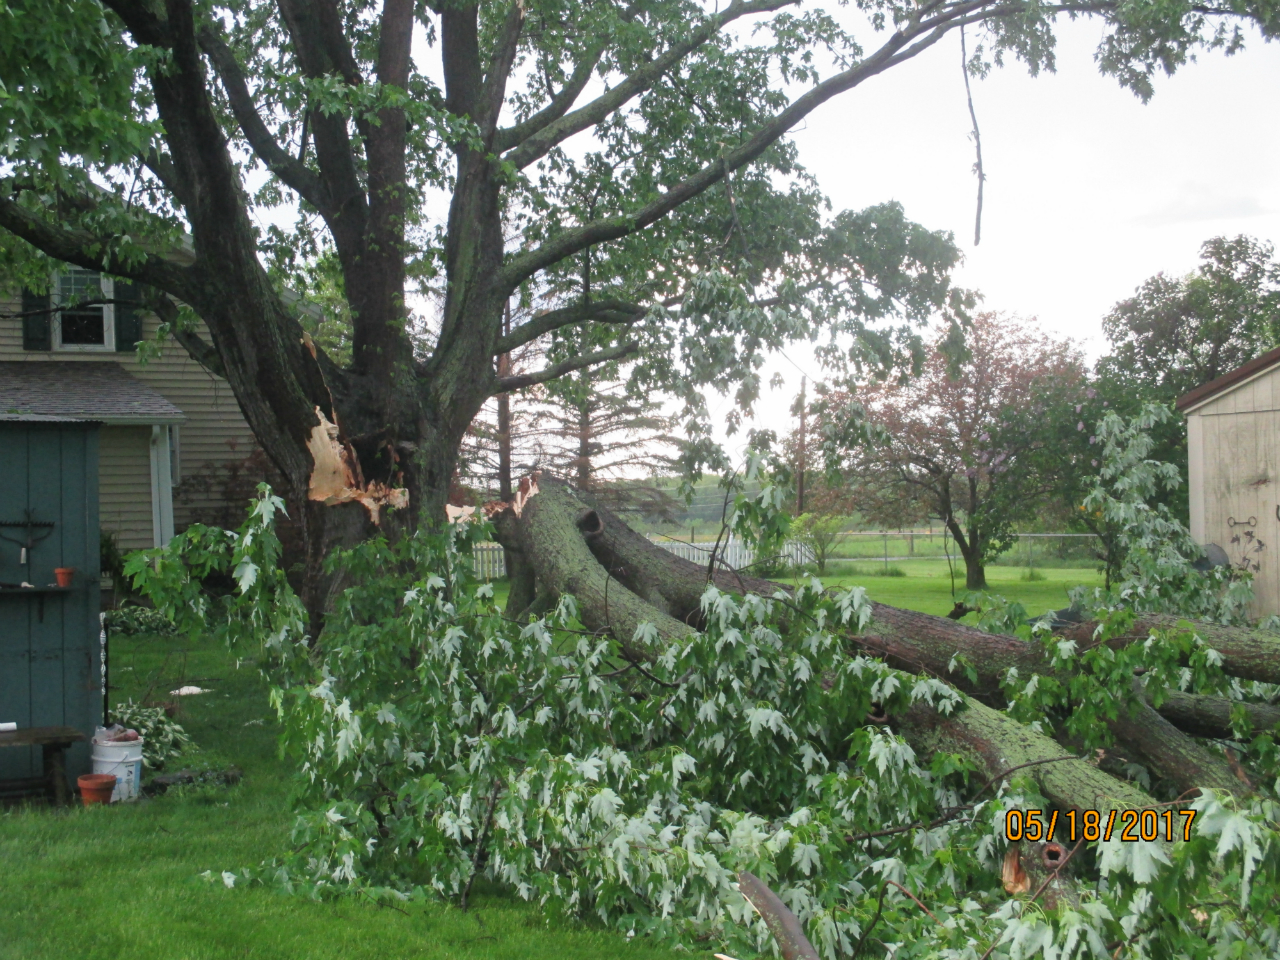 Storm brings down tree limb in Fayette (photo)